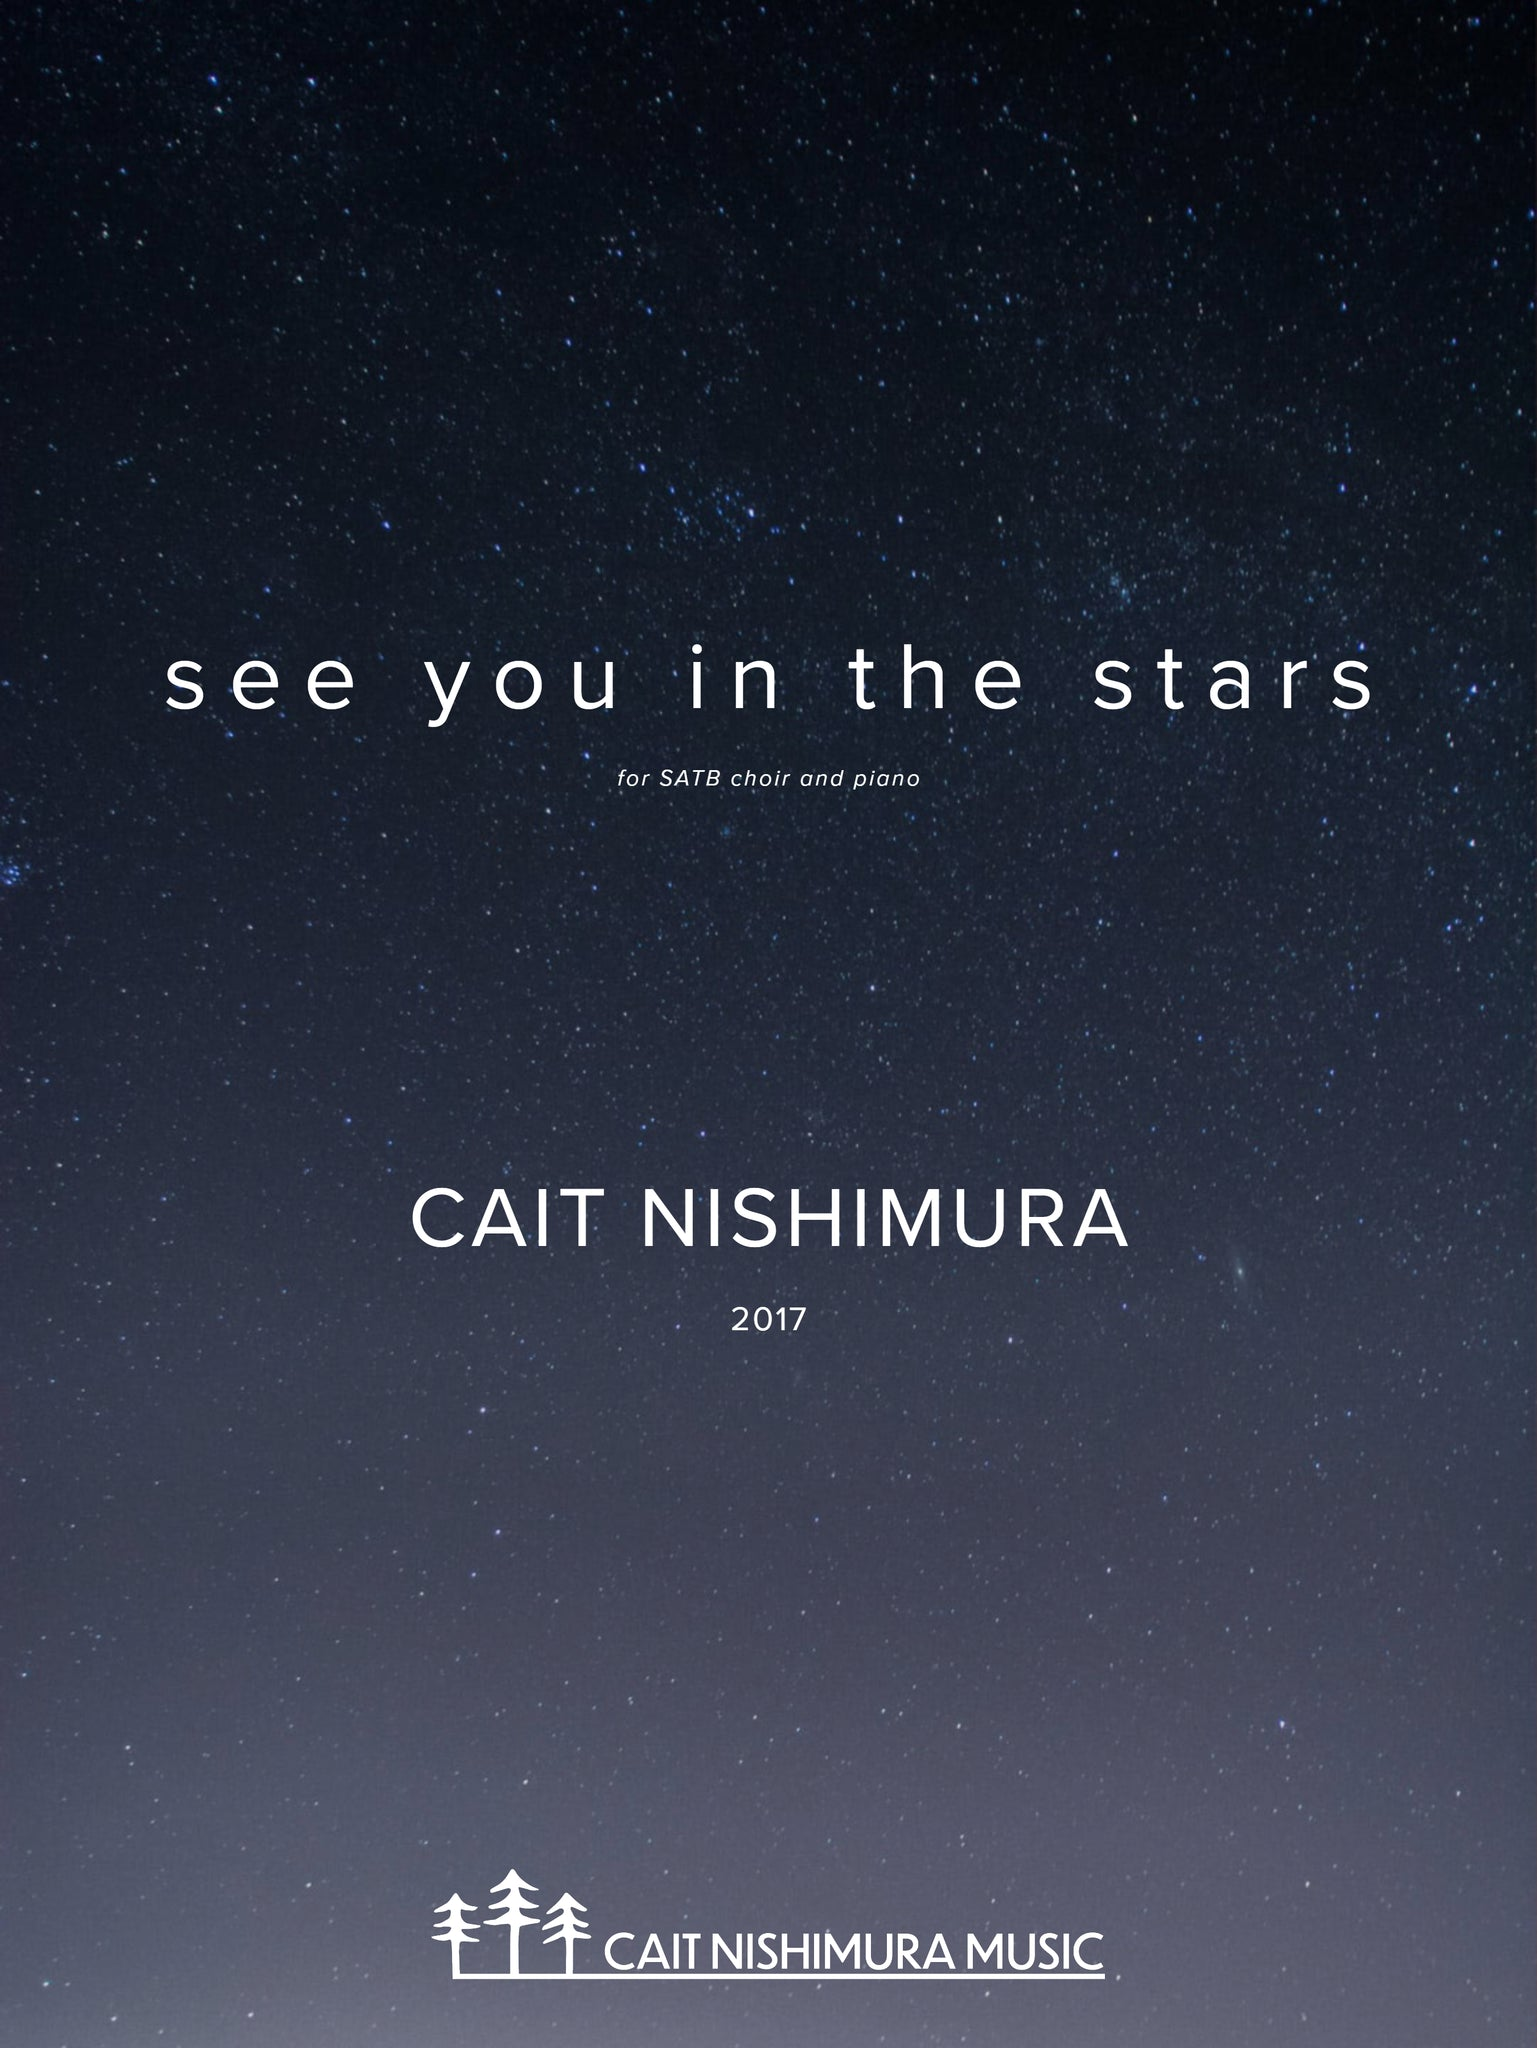 see you in the stars